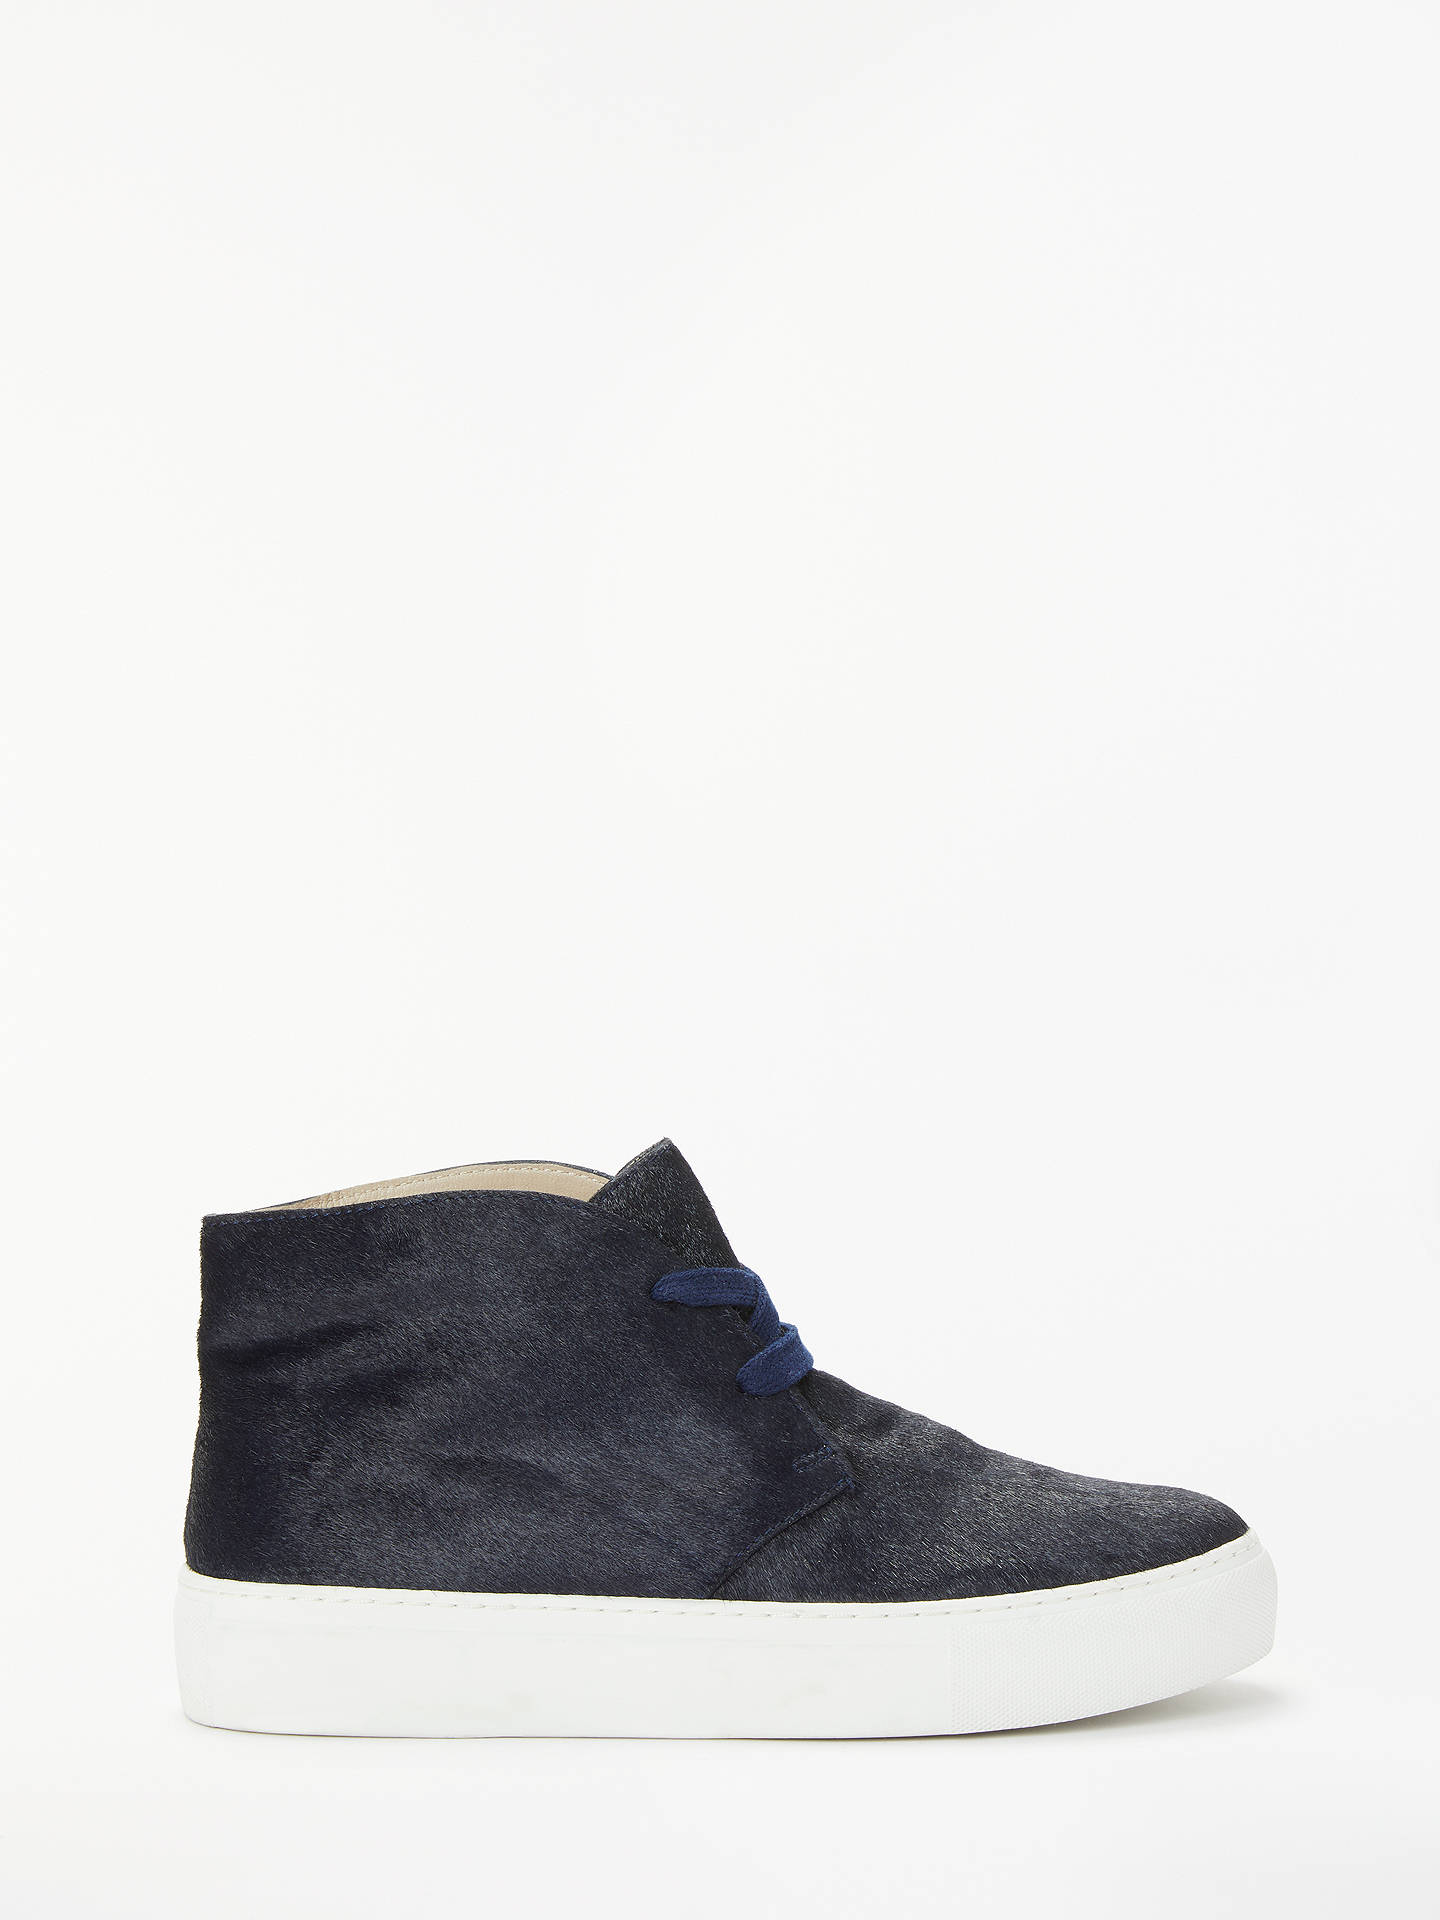 BuyBoden Platform Trainers, Navy, 5 Online at johnlewis.com